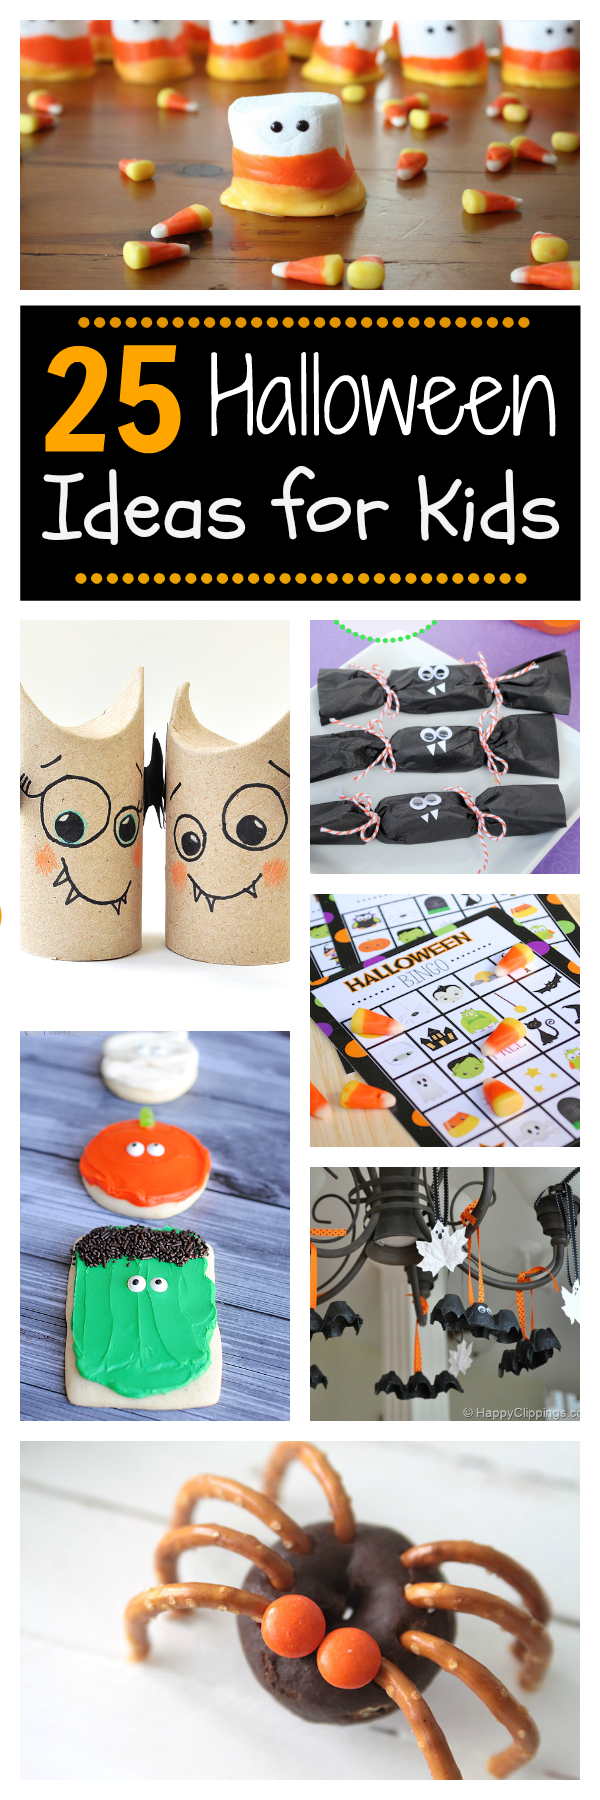 25 Fun Ideas for Kids this Halloween: Crafts, Treats and Activities